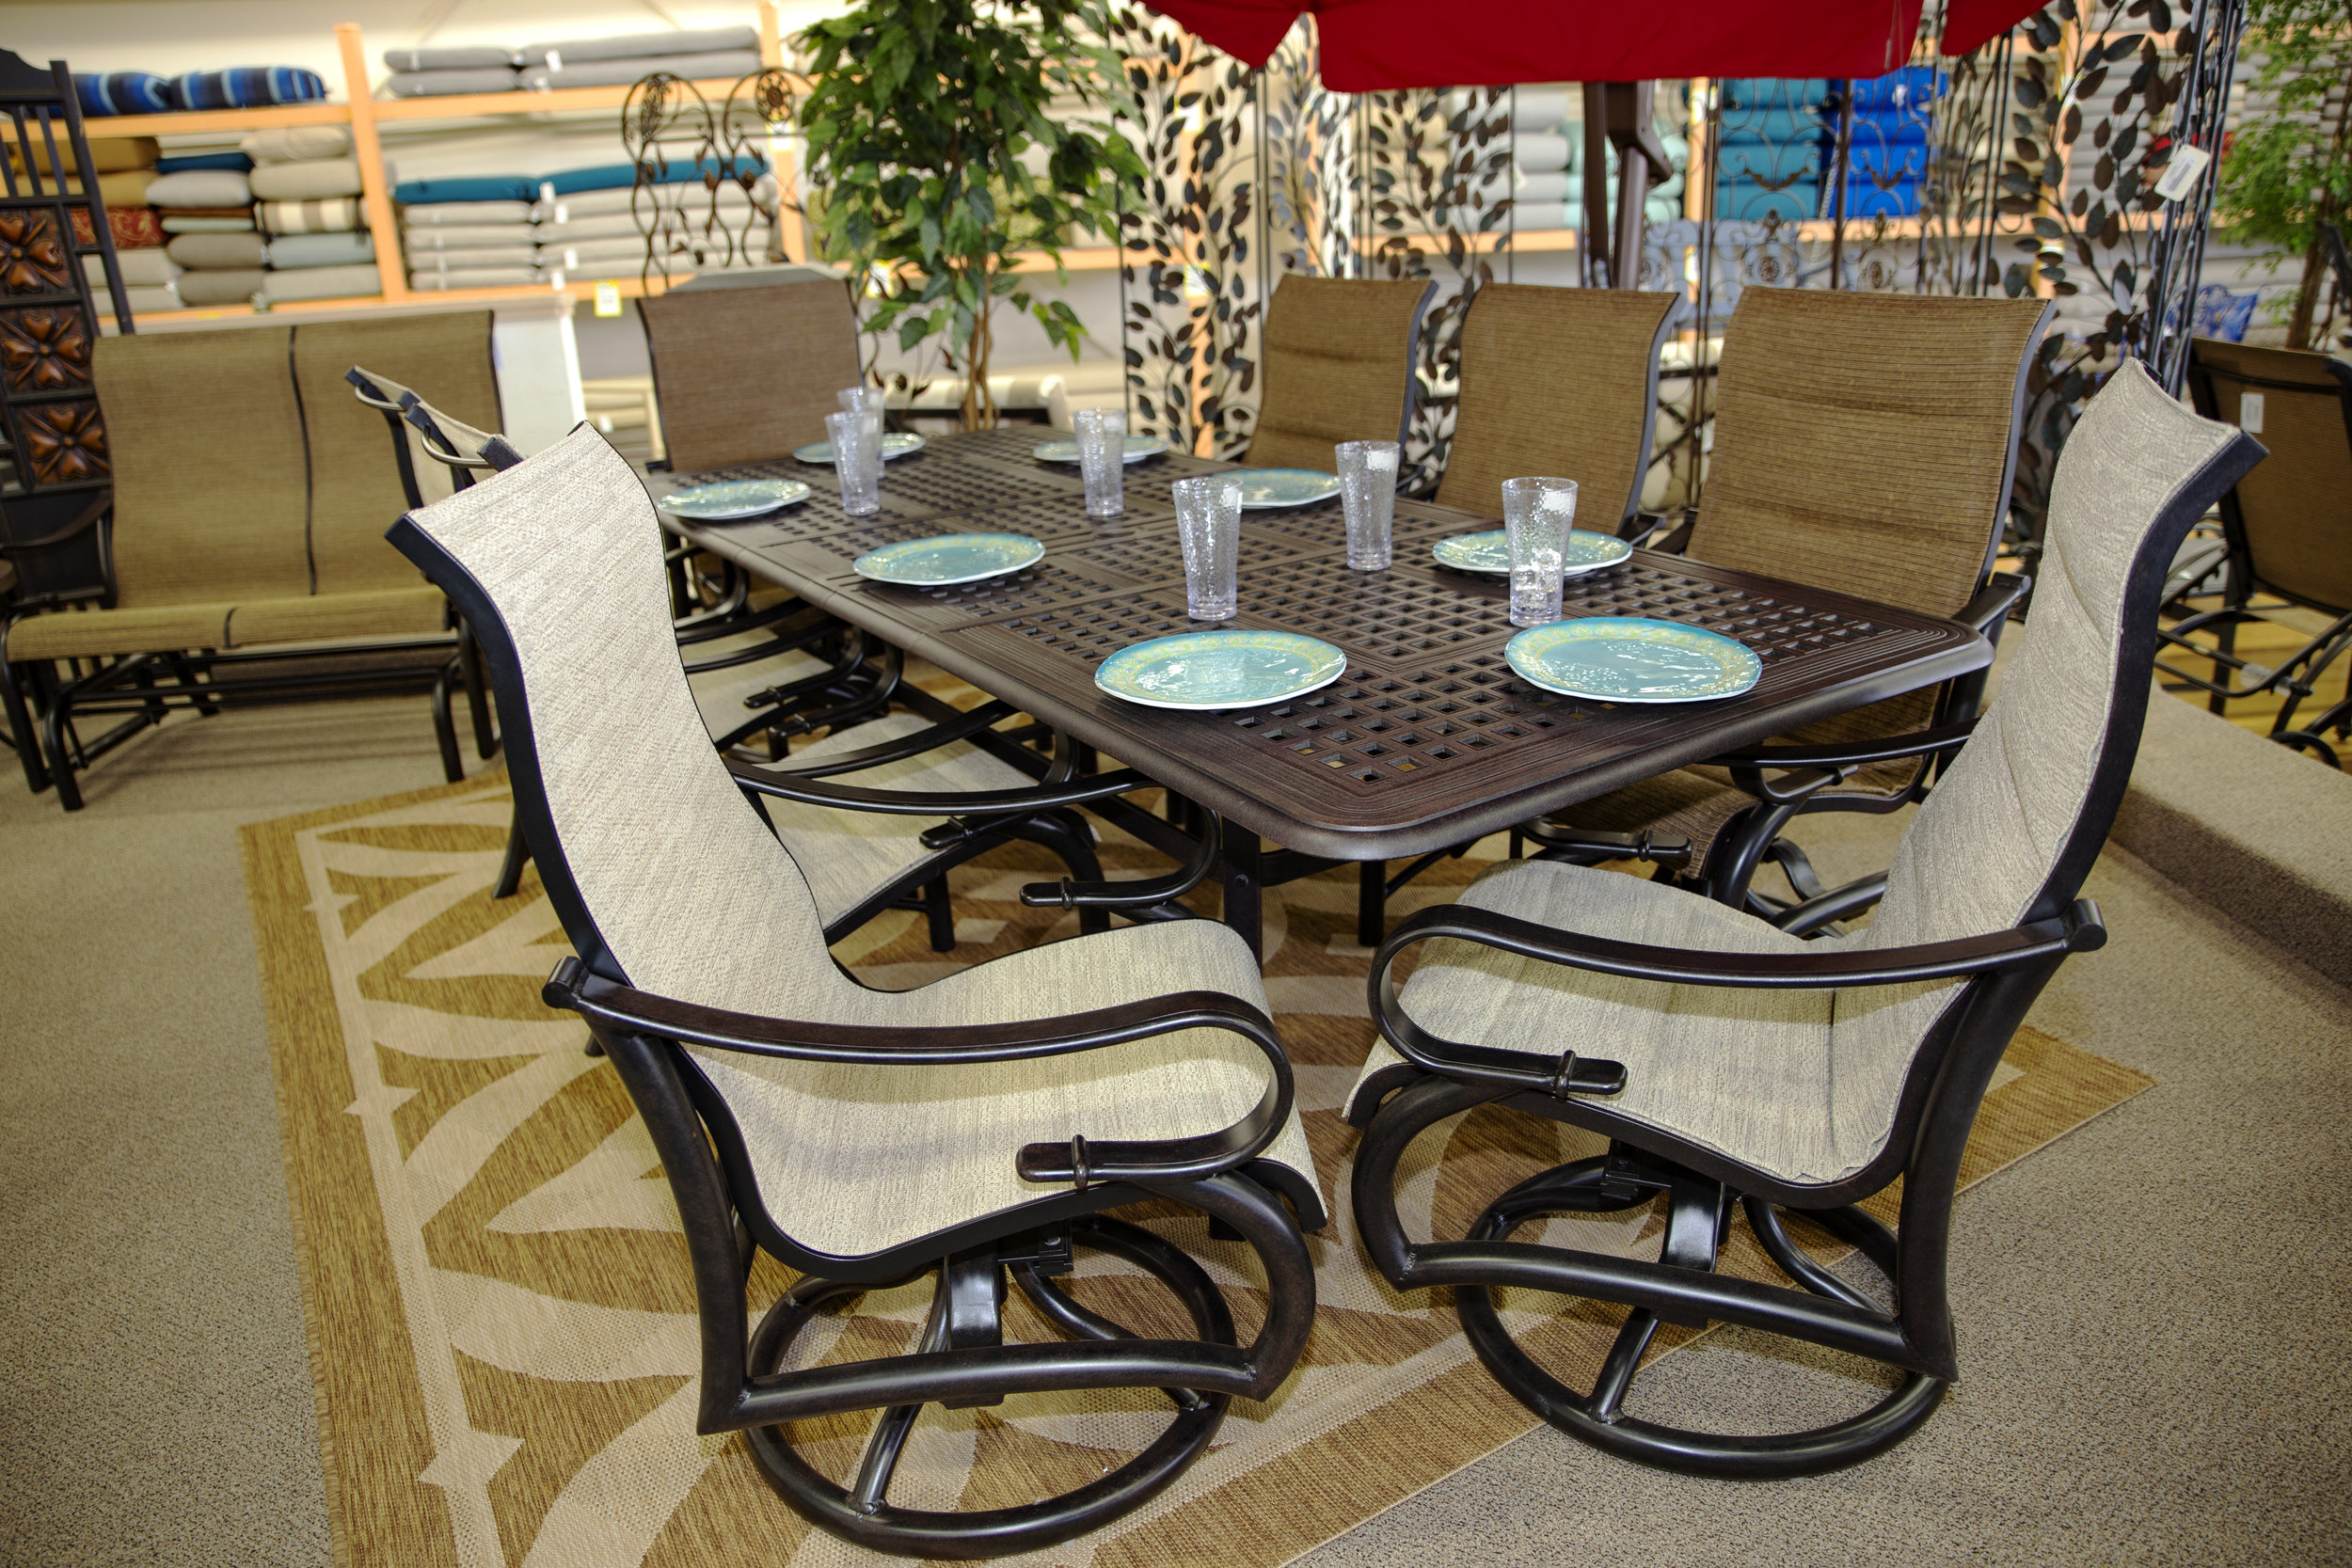 Passage Dining Set in both fabrics in both sling and padded sling with chaises, gliders, dining chairs and swivel chairs